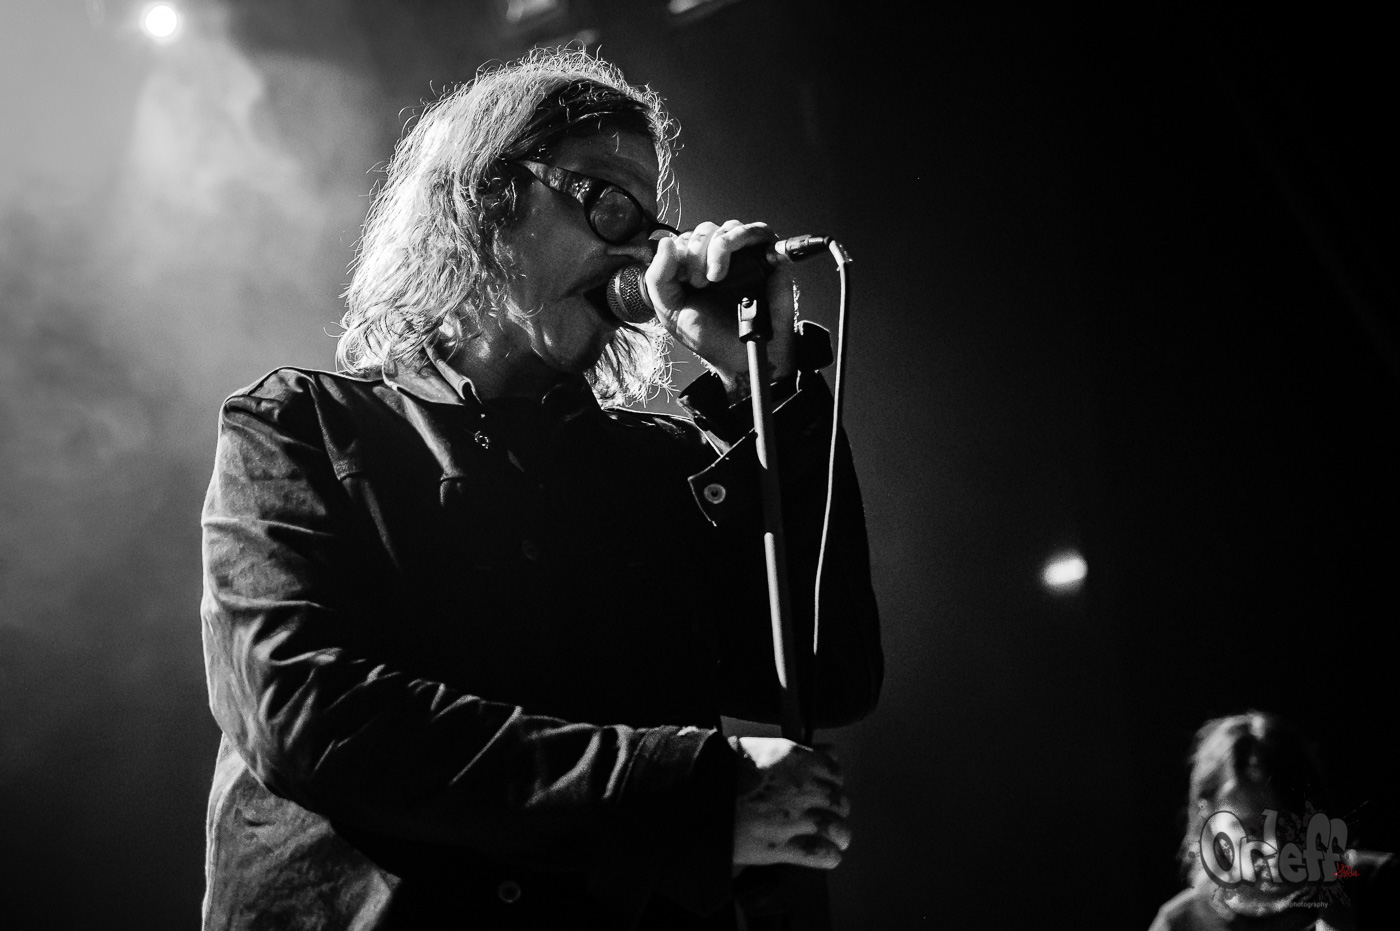 Mark Lanegan Band @ Principal Club Theater, 2019